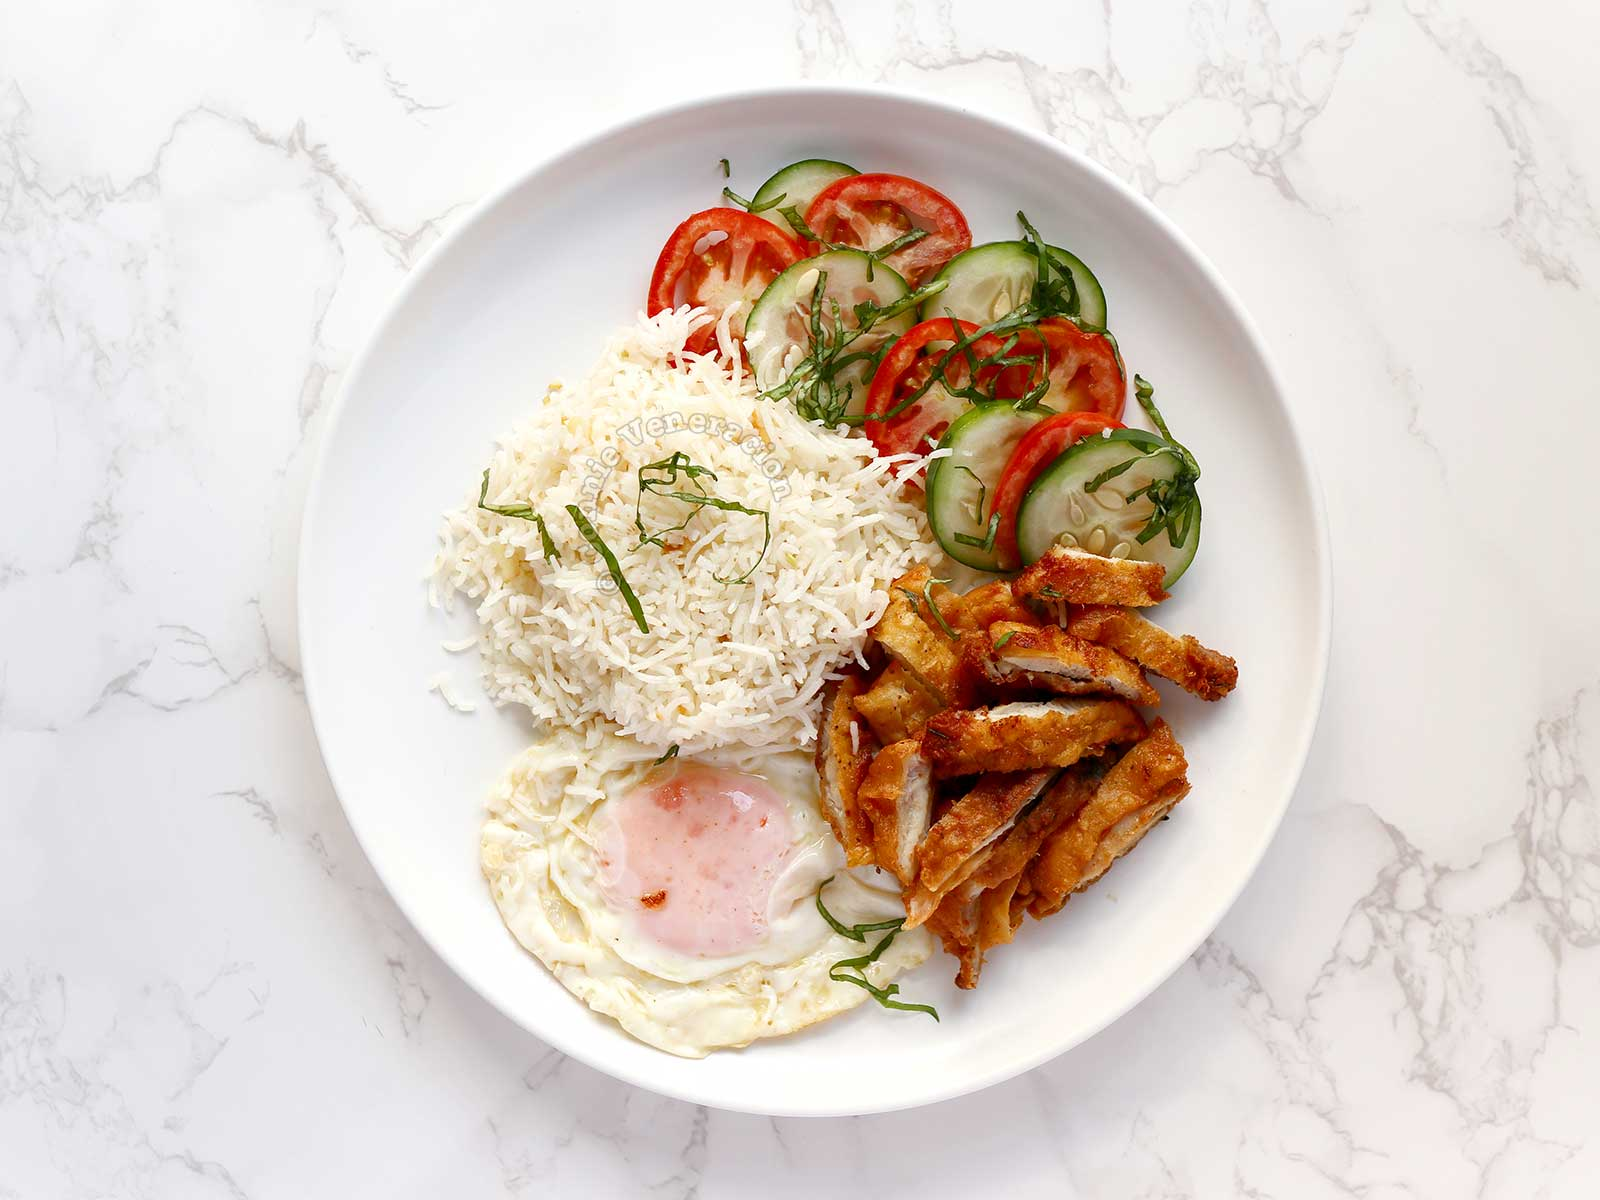 Chiksilog (Fried Chicken, Fried Rice and Egg) Served with Sliced Cucumber and Tomato Sprinkled with Fresh Basil